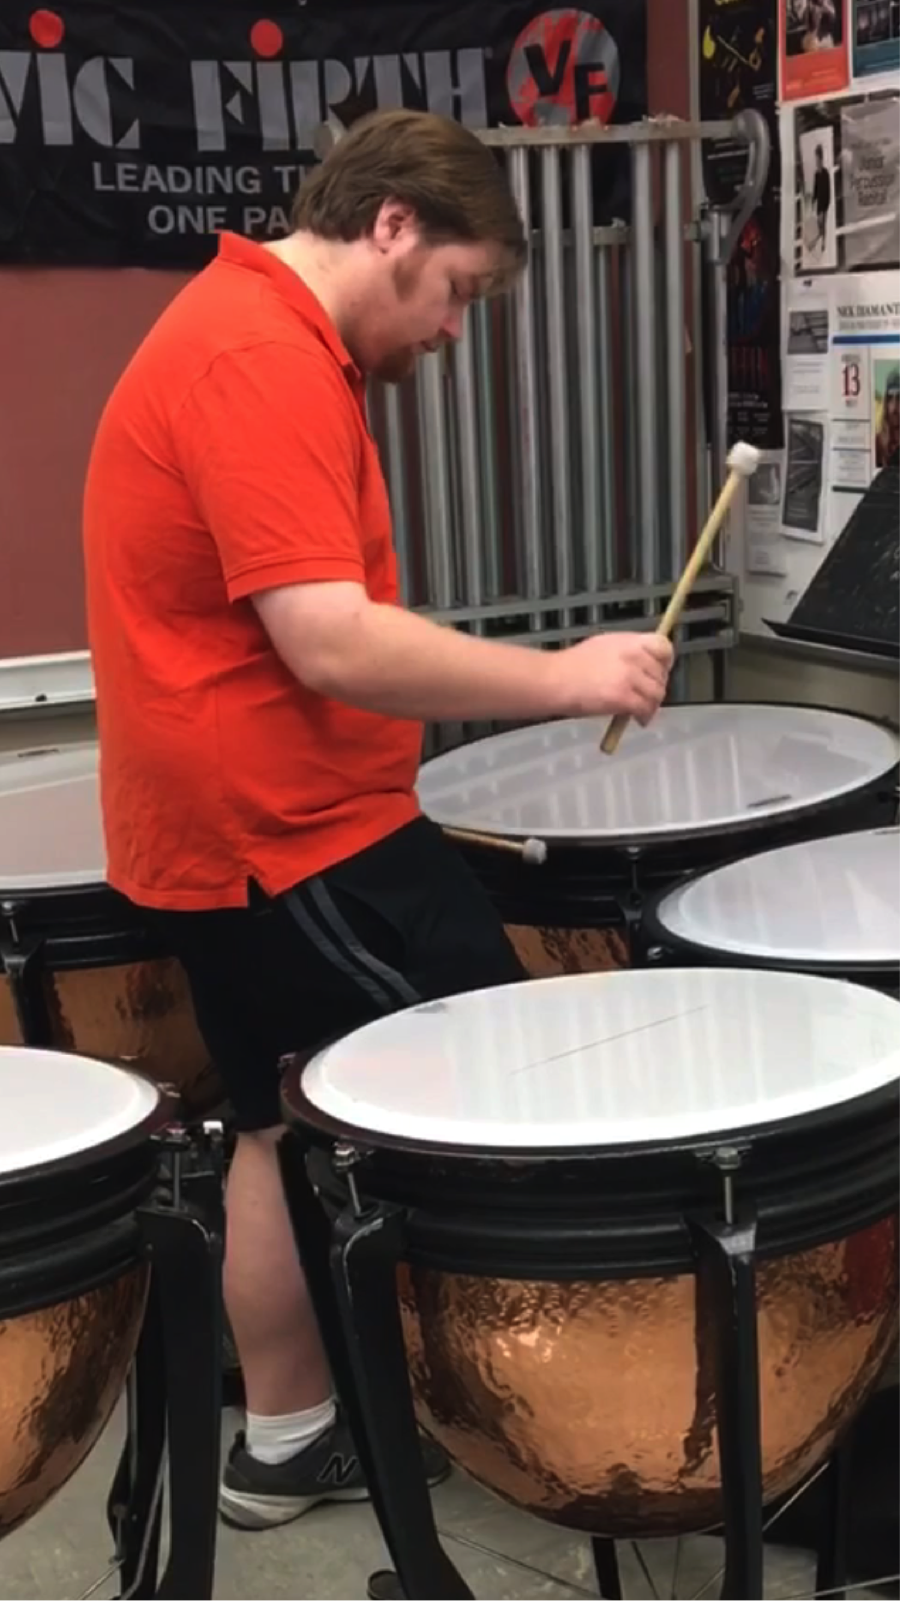 Zac Erstad plays one of his pieces from an earlier performance on the Timpani, in a practice room in the Lotte Lehman Hall.